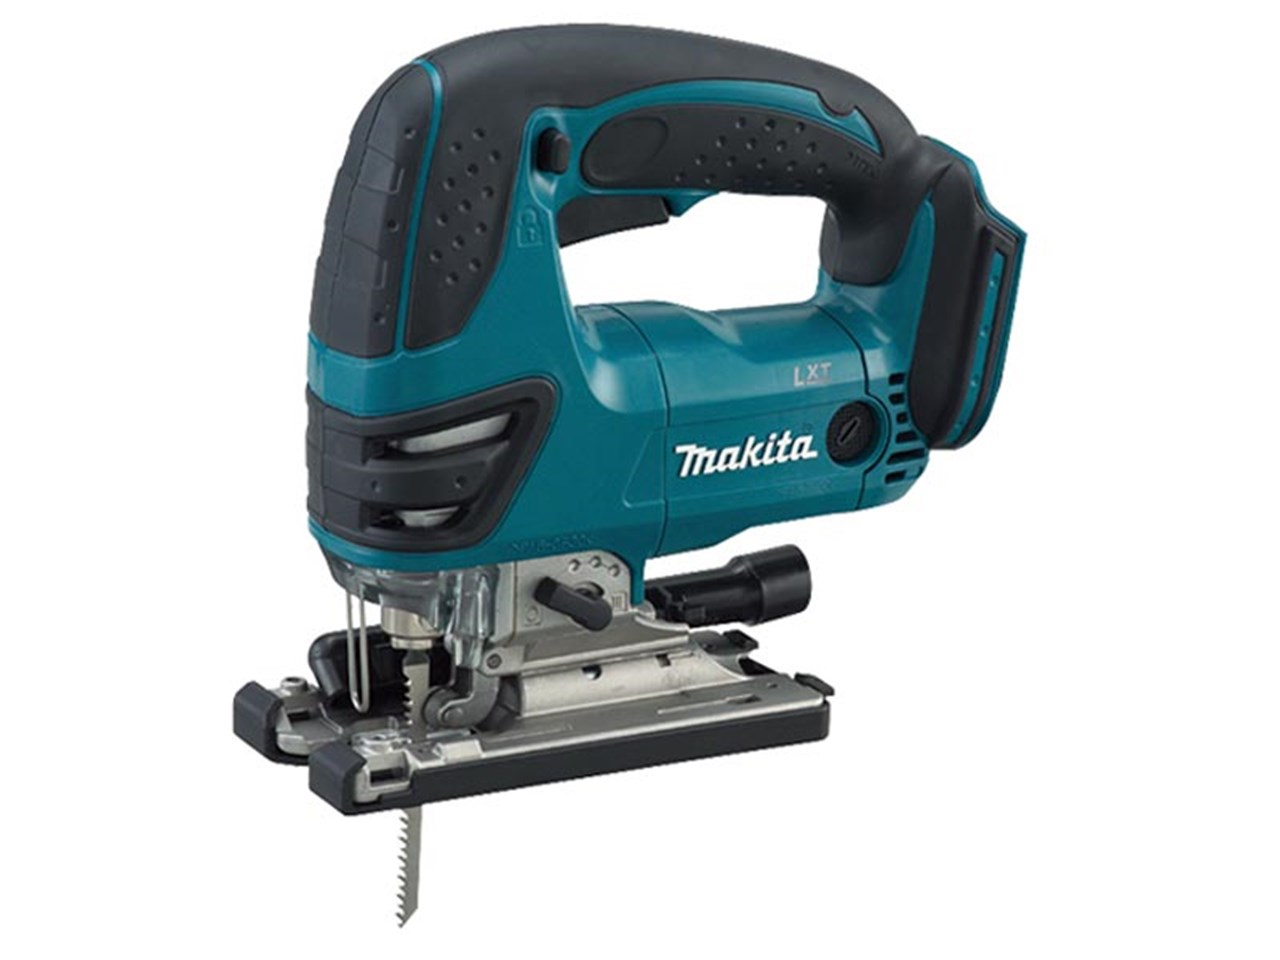 Makita DJV180Z 18V Li-Ion Jigsaw BODY ONLY